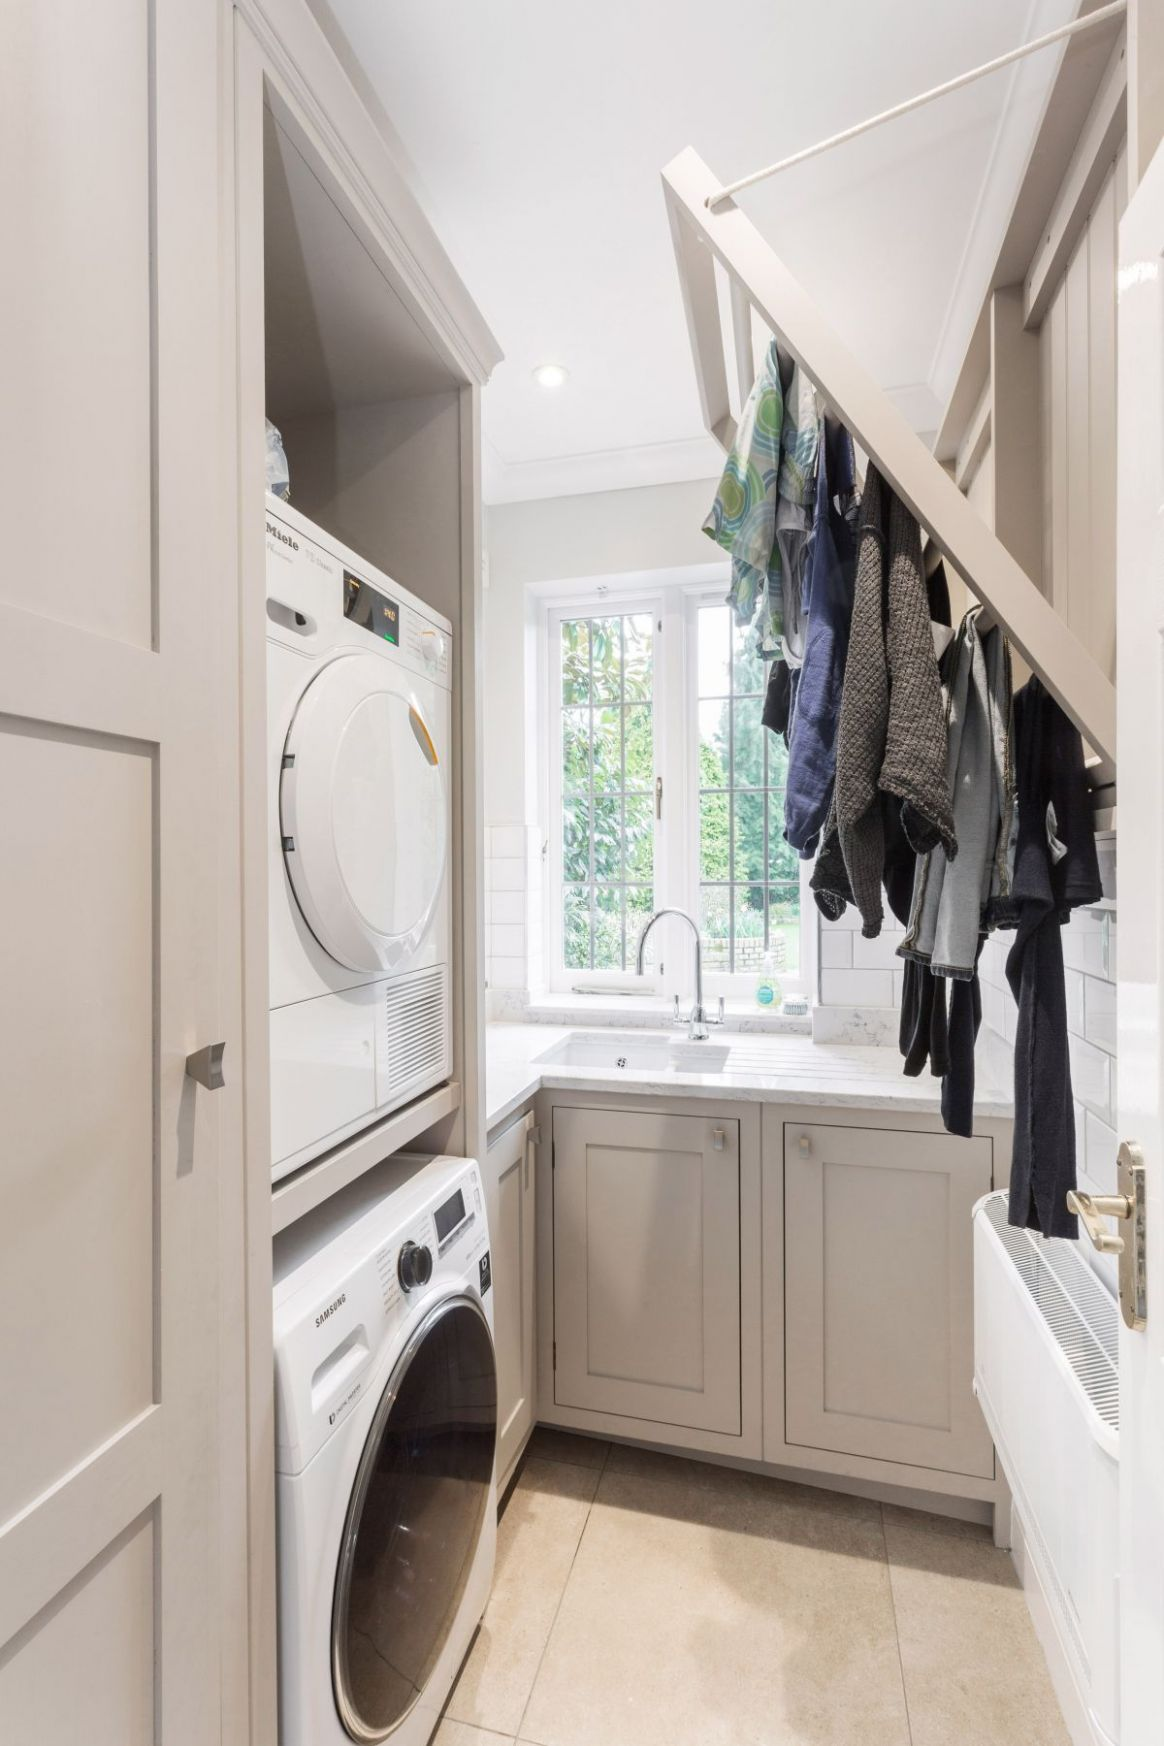 Utility room ideas: 9 ways to make the most of your space | Real ...